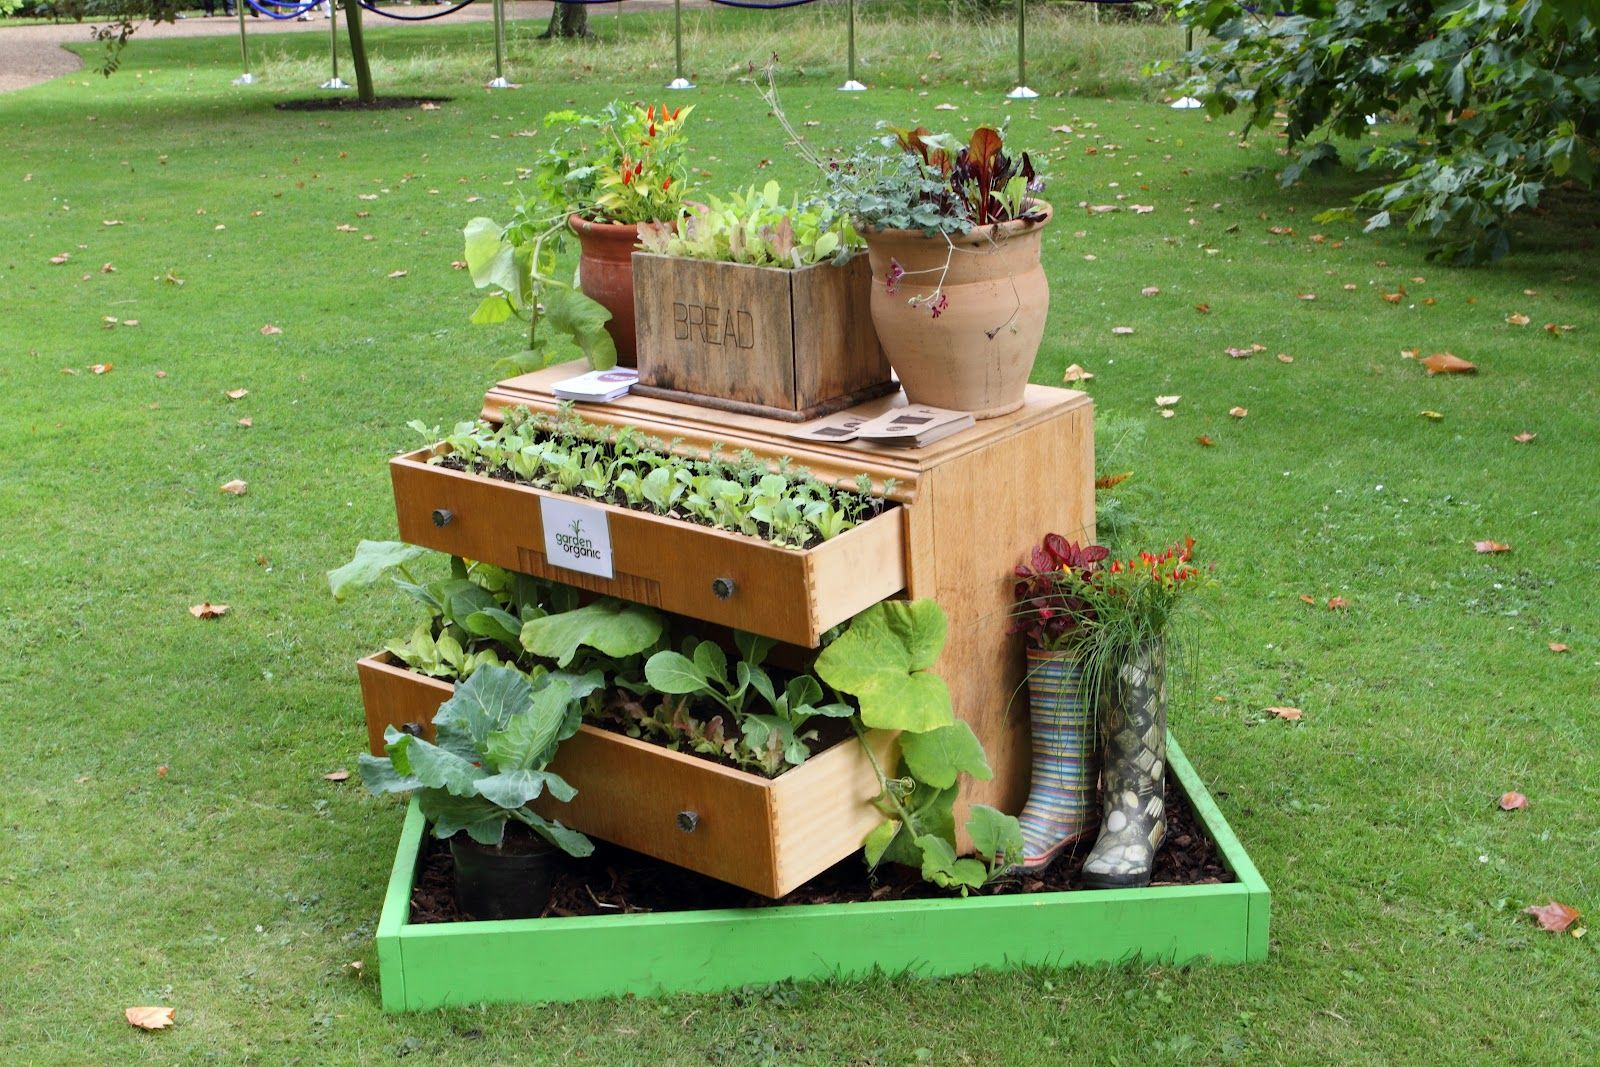 17 Inspirational Ideas How To Recycle Old Trash Into Beautiful ...